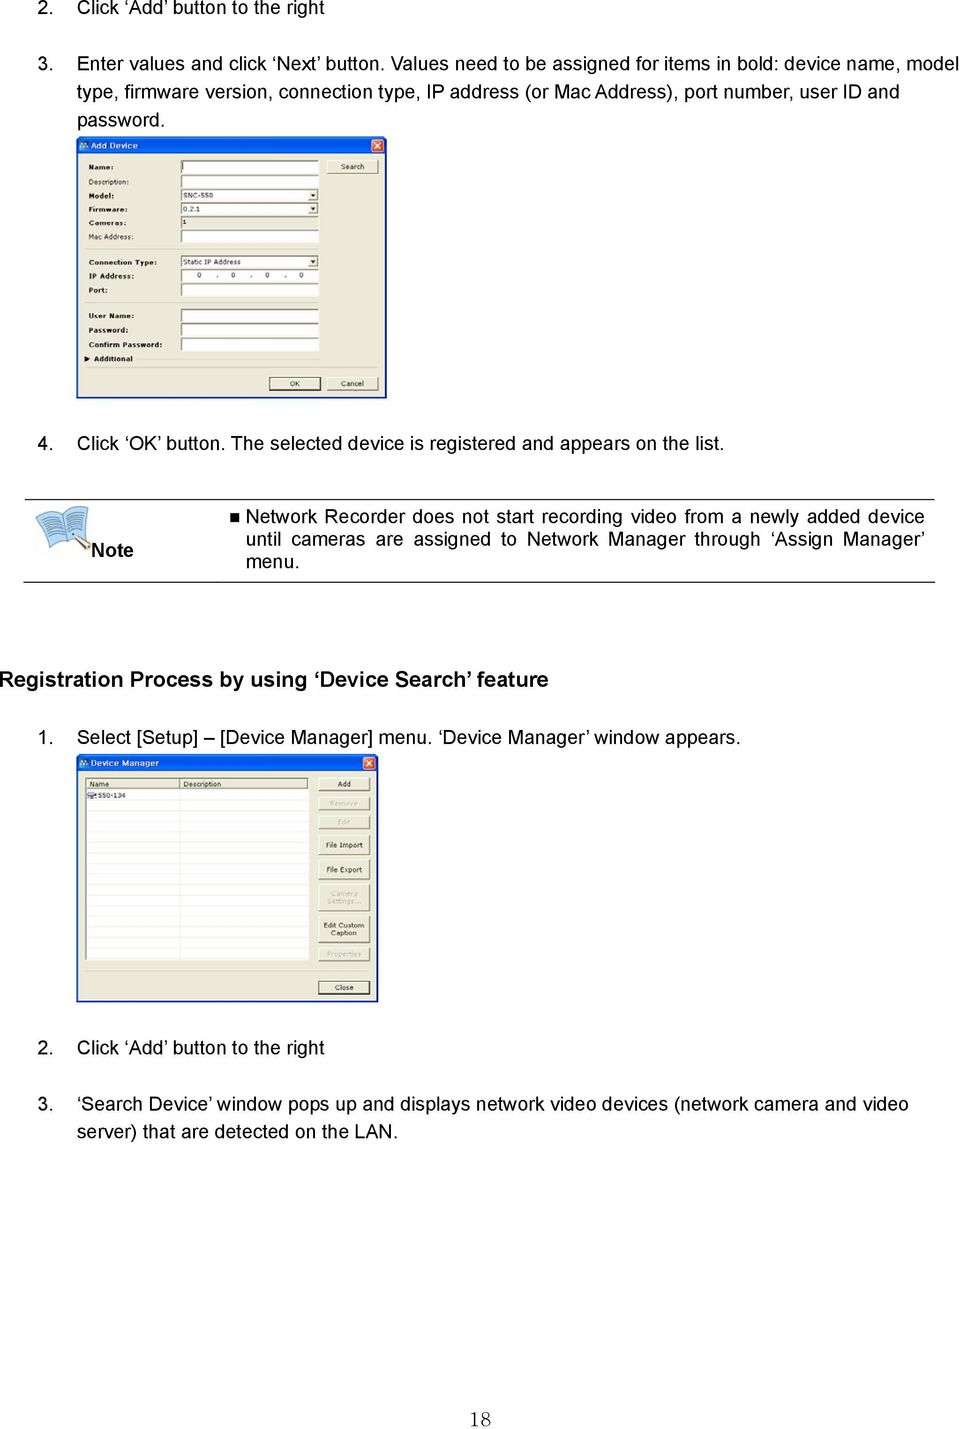 The selected device is registered and appears on the list.